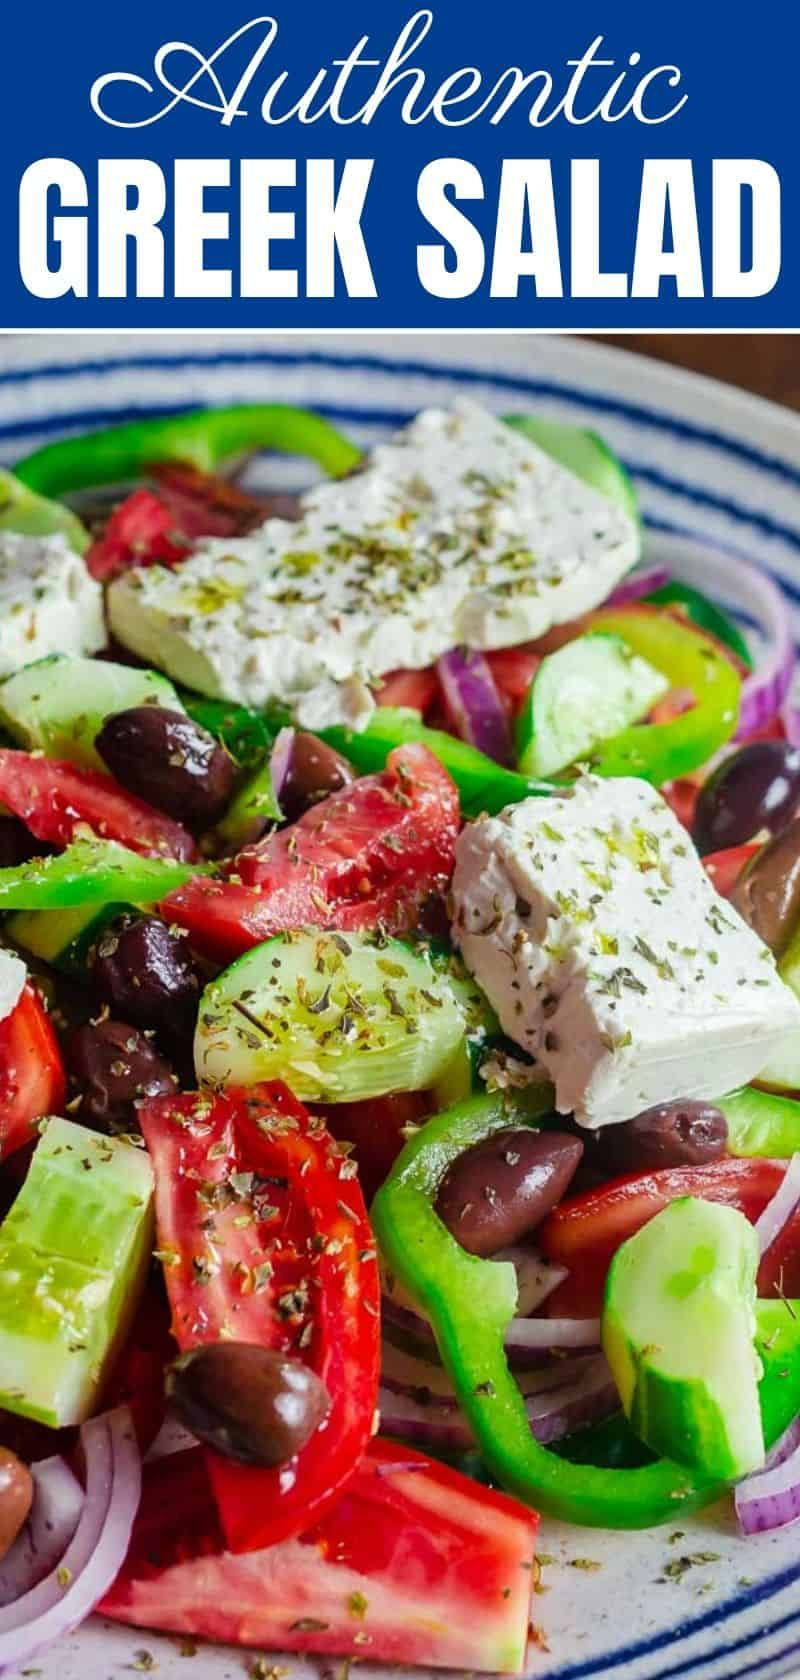 You Ll Love This Simple Greek Salad So Easy And Full Of Flavor In 2020 Traditional Greek Salad Greek Salad Recipes Greek Salad